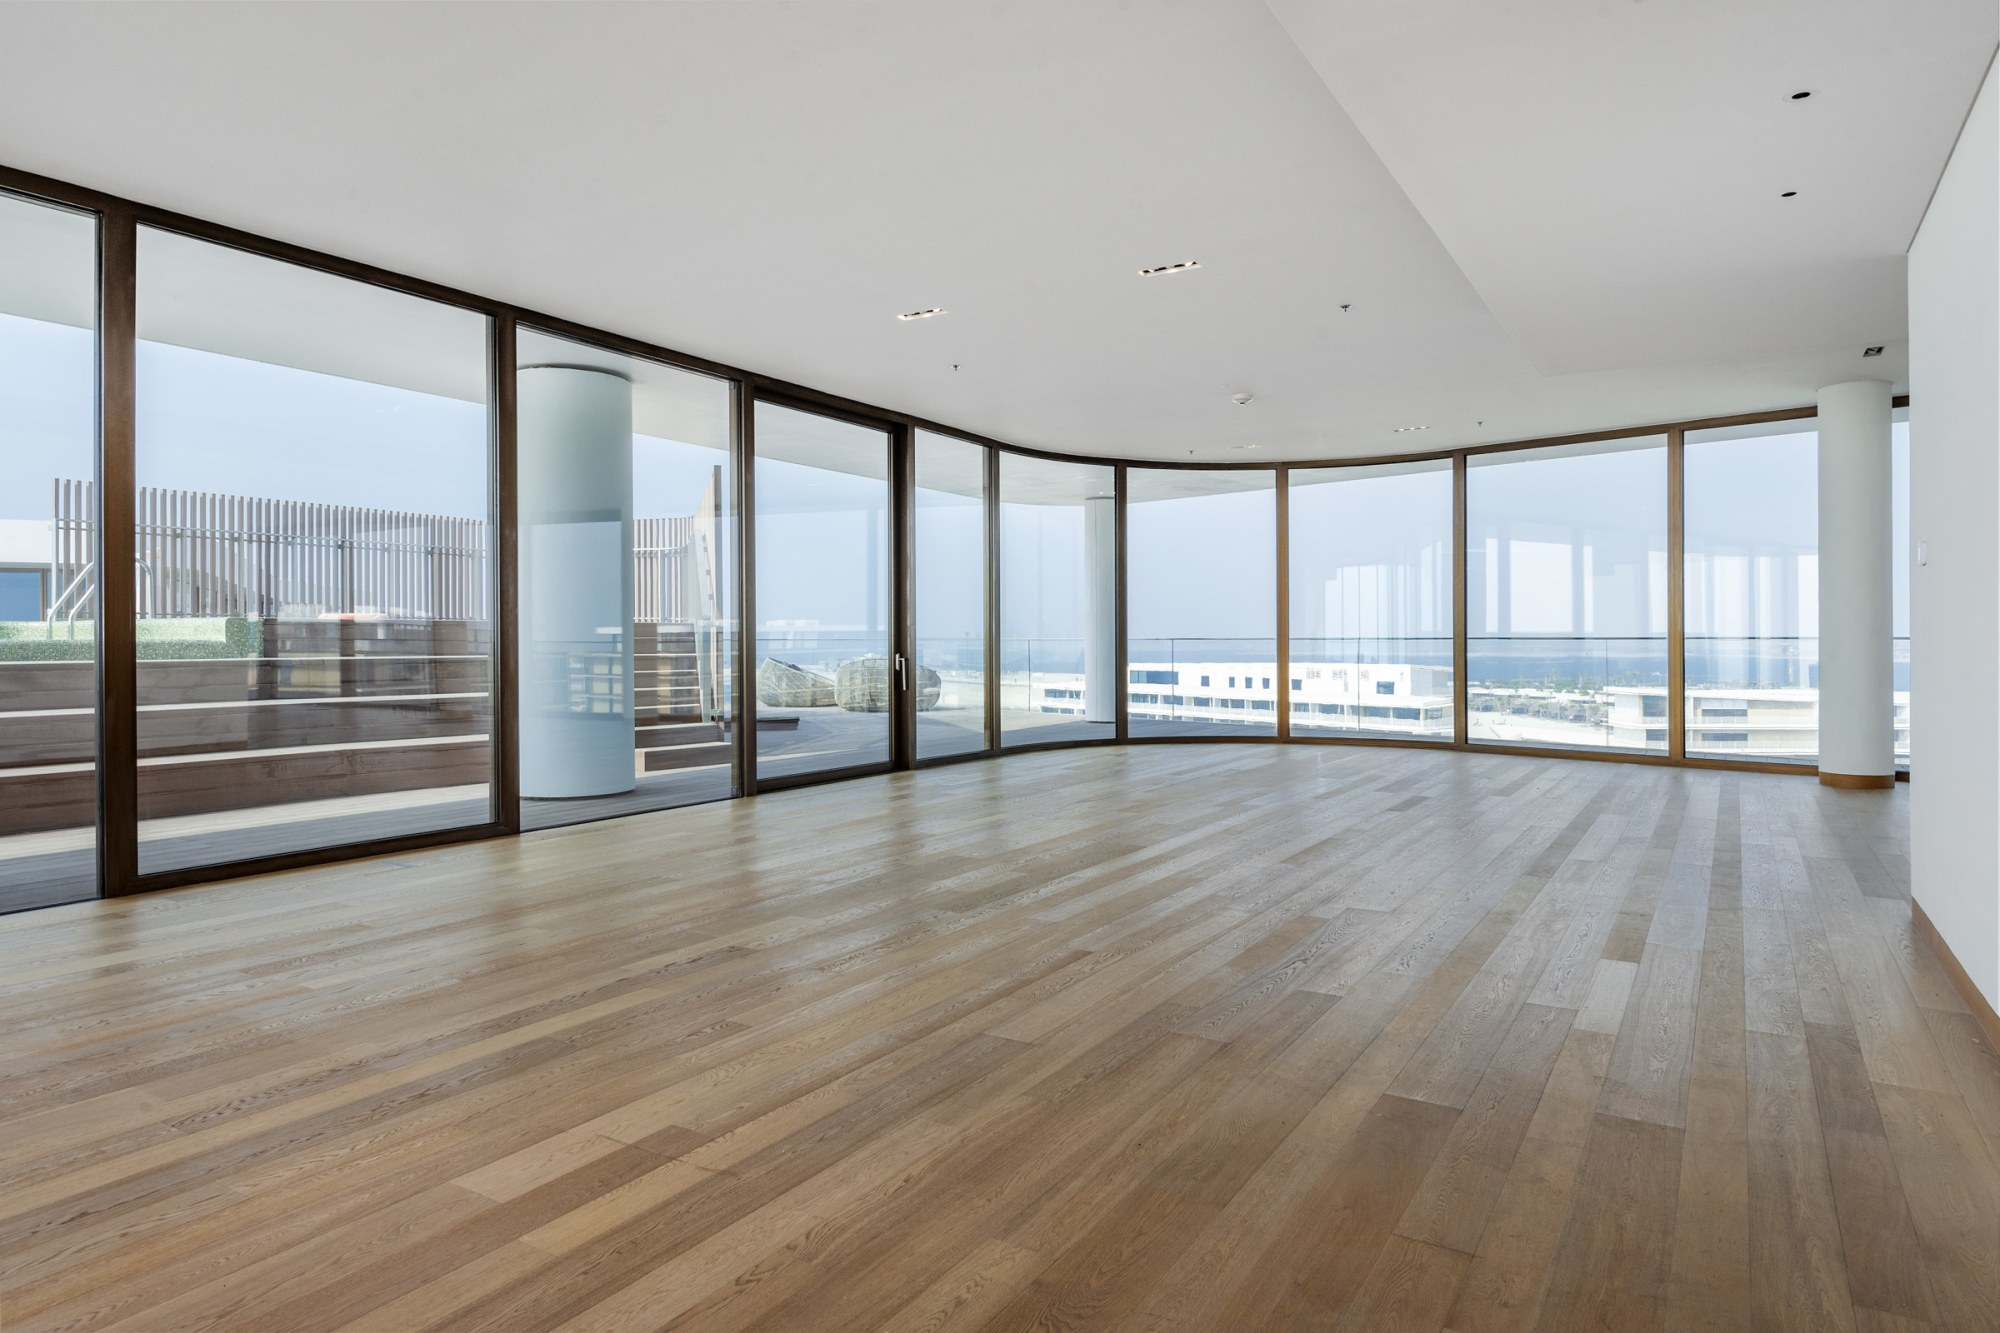 4 Bedroom | Rare Full Floor | Bvlgari Penthouse